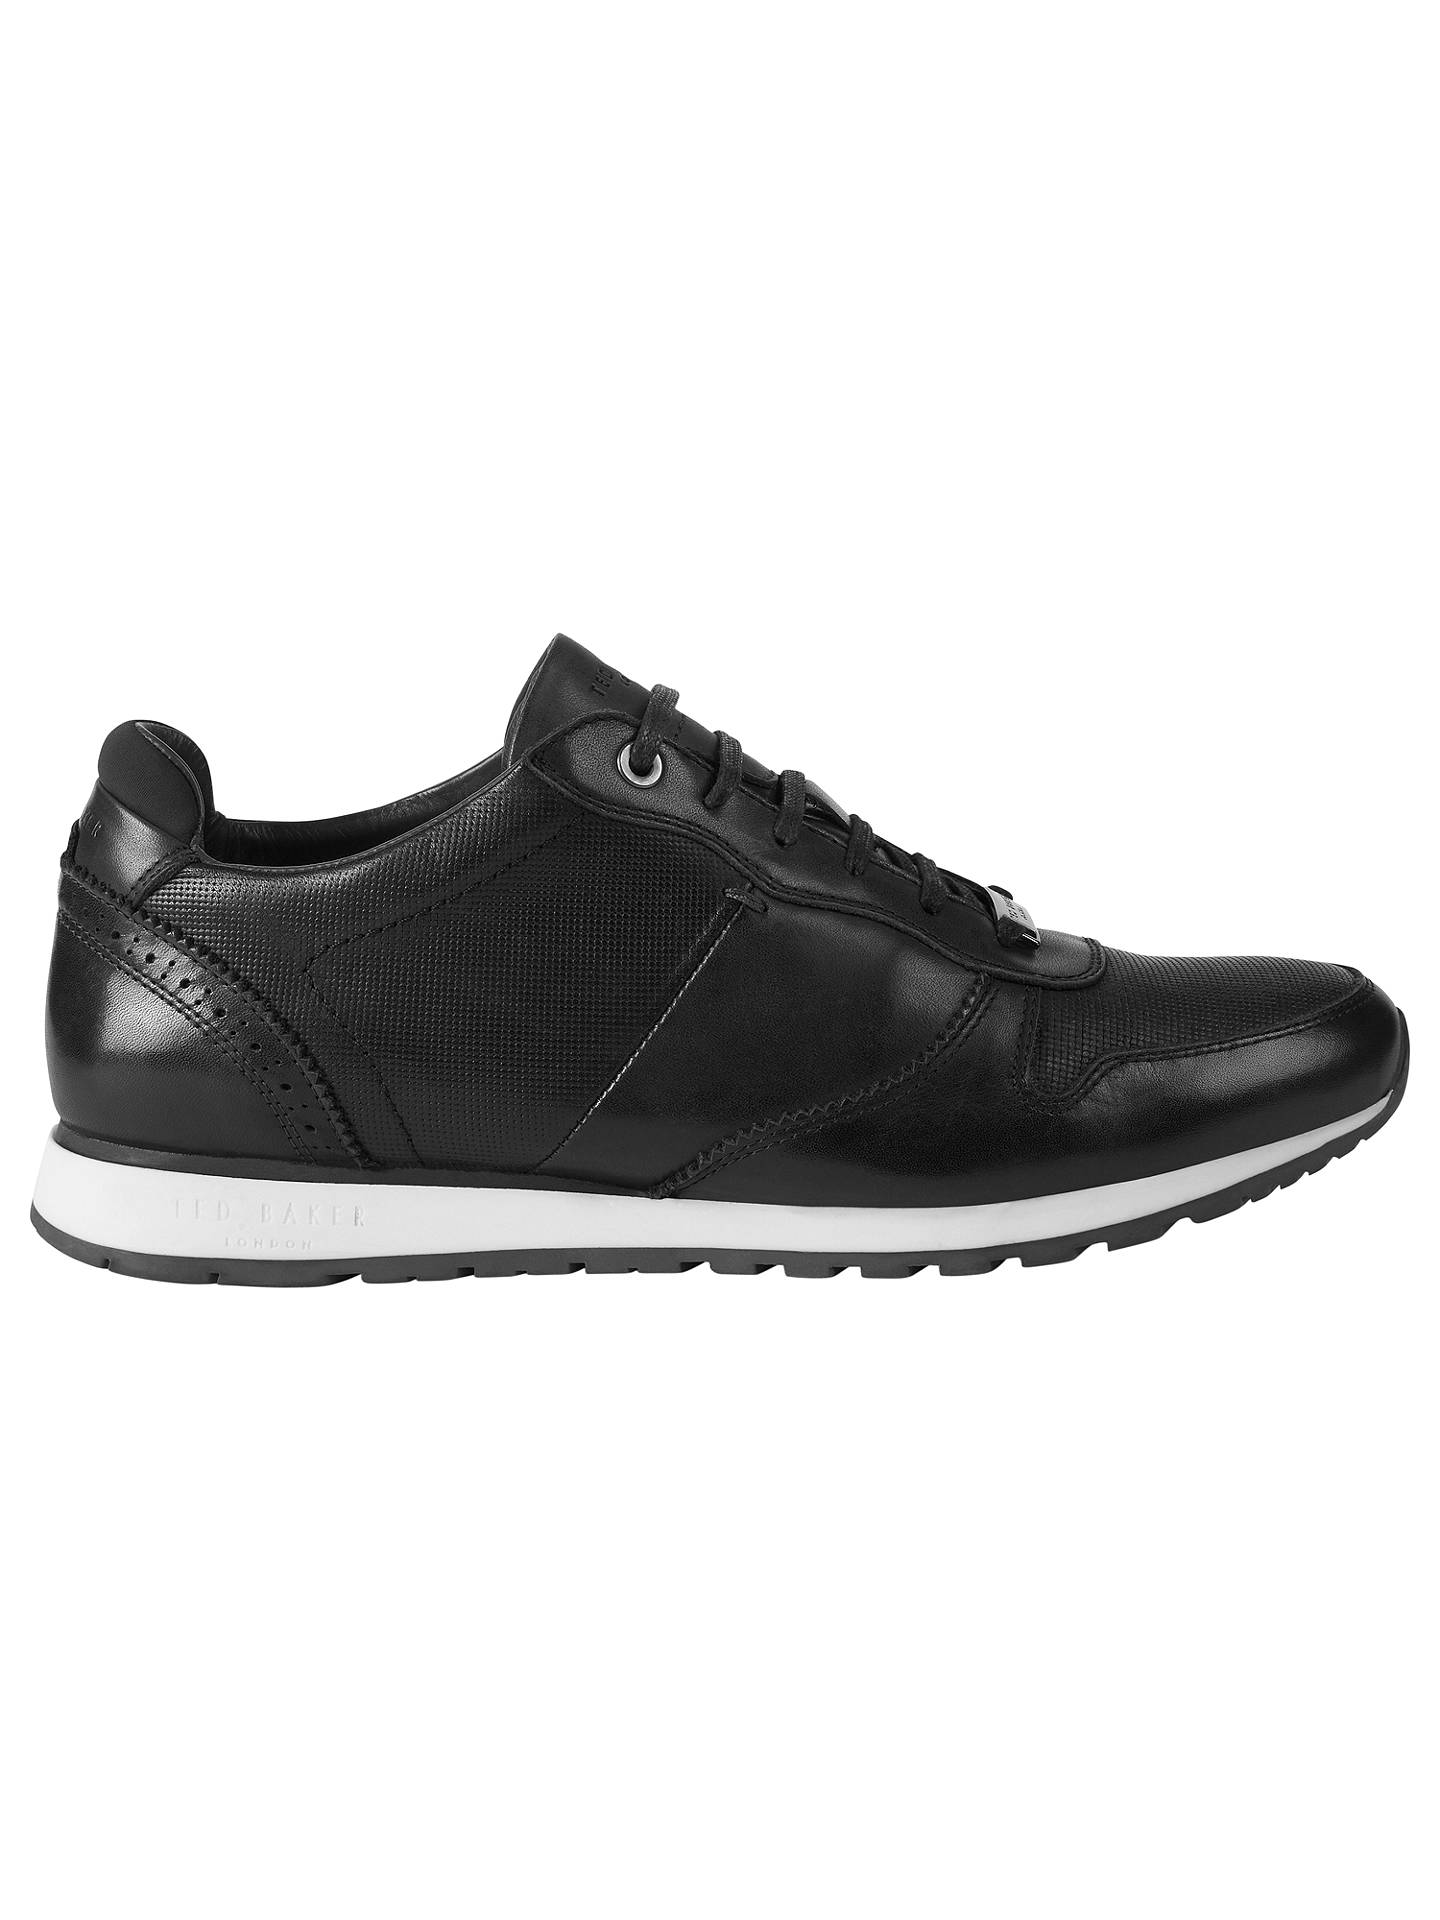 d7174692672ea Ted Baker Shindl Leather Running Shoes at John Lewis   Partners